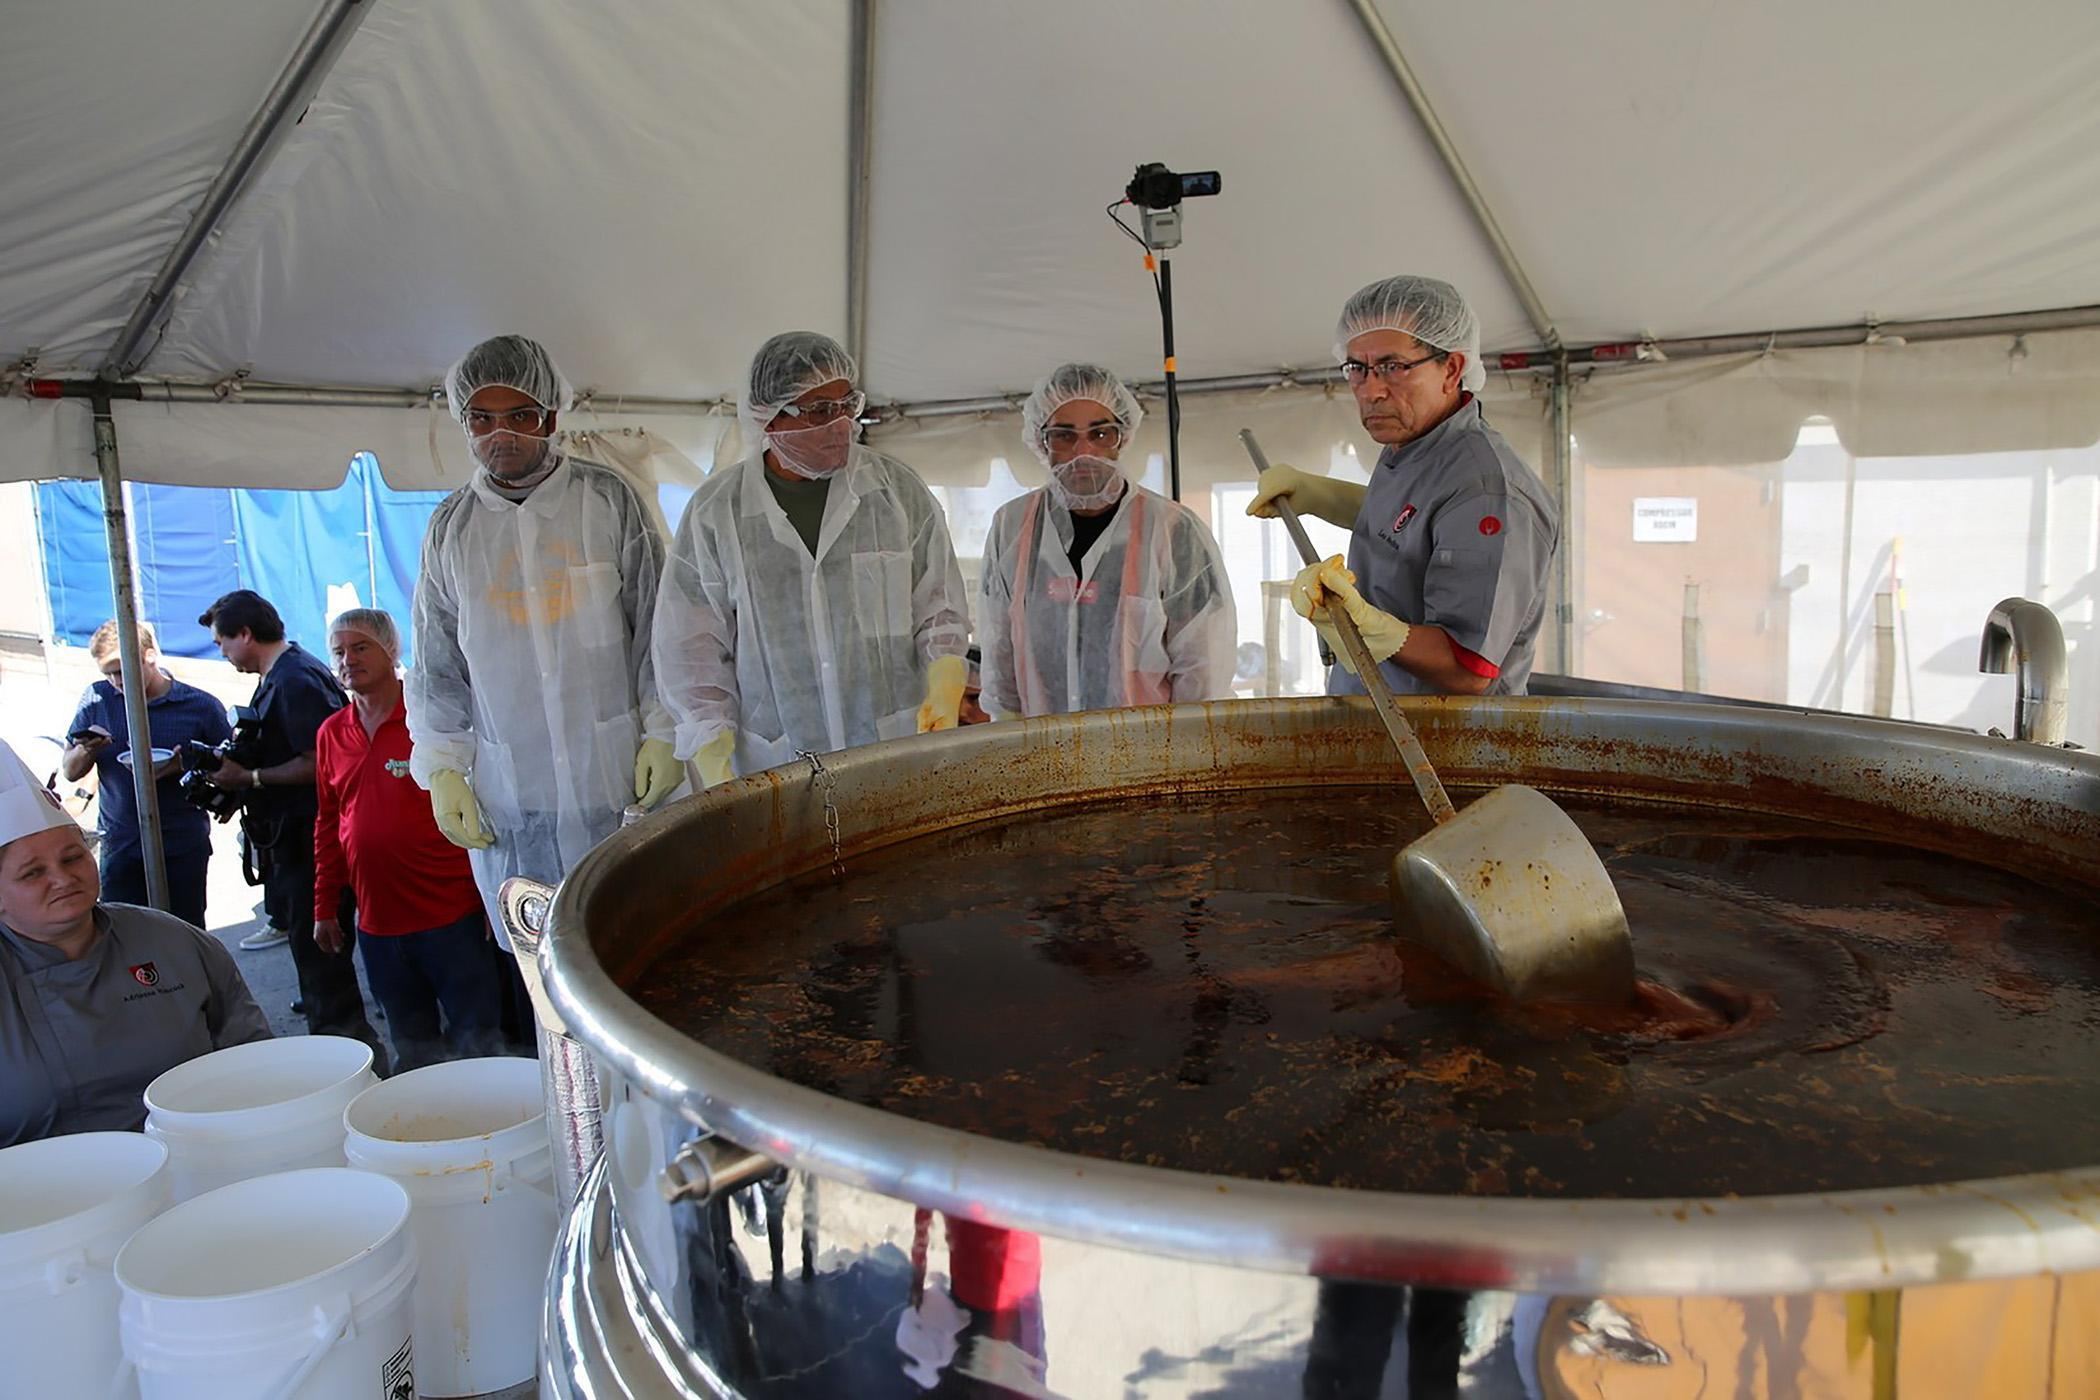 Chefs from Juanita's Foods along with culinary students and instructors from The Art Institute of Washington, a branch of the Art Institute of Atlanta, whip up a nearly 2,500-pound pot of Menudo Soup.